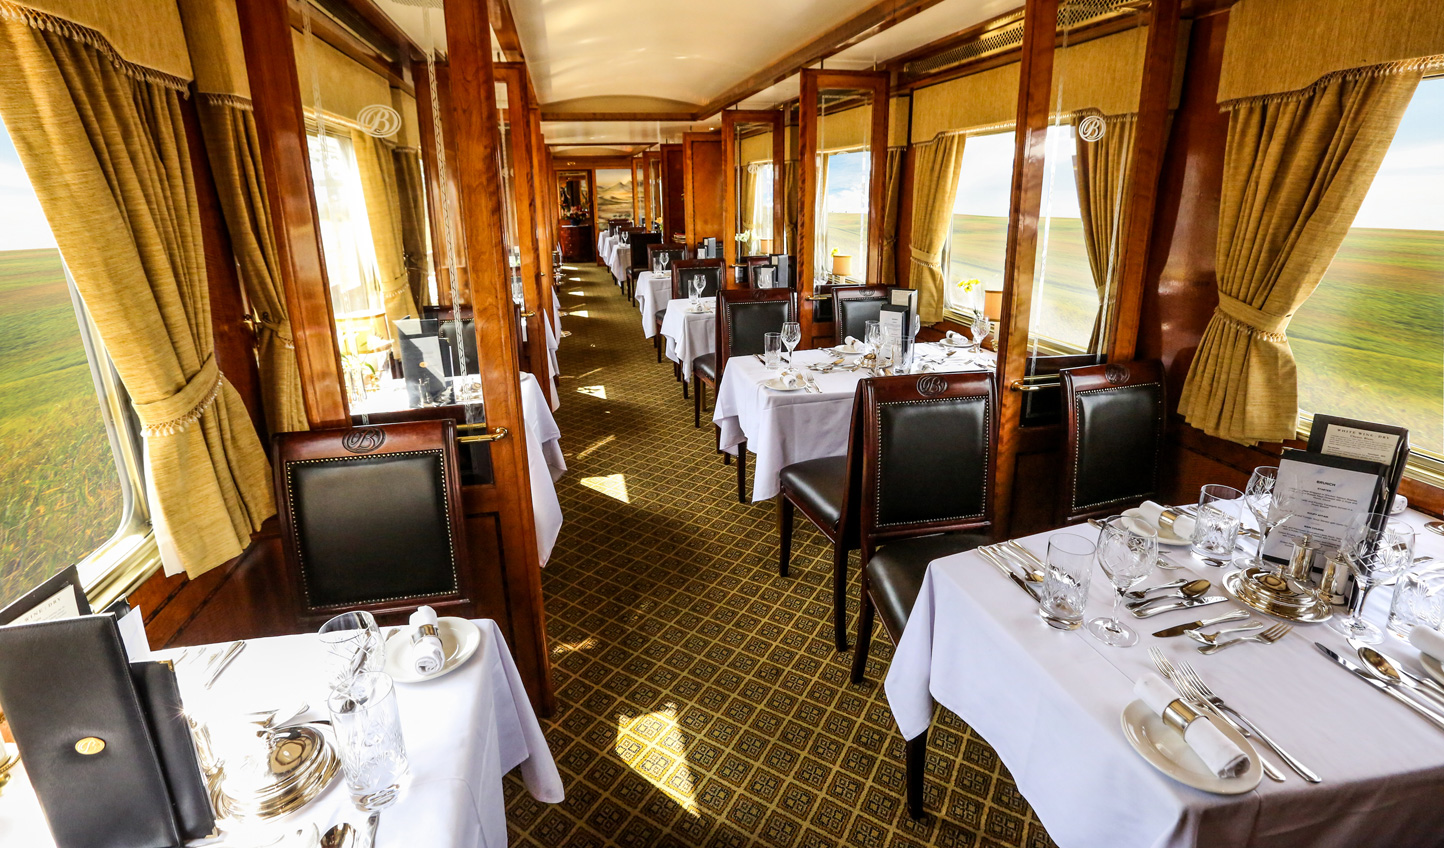 Gastronomic fare served as the scenery passes by the windows in the Dining Car